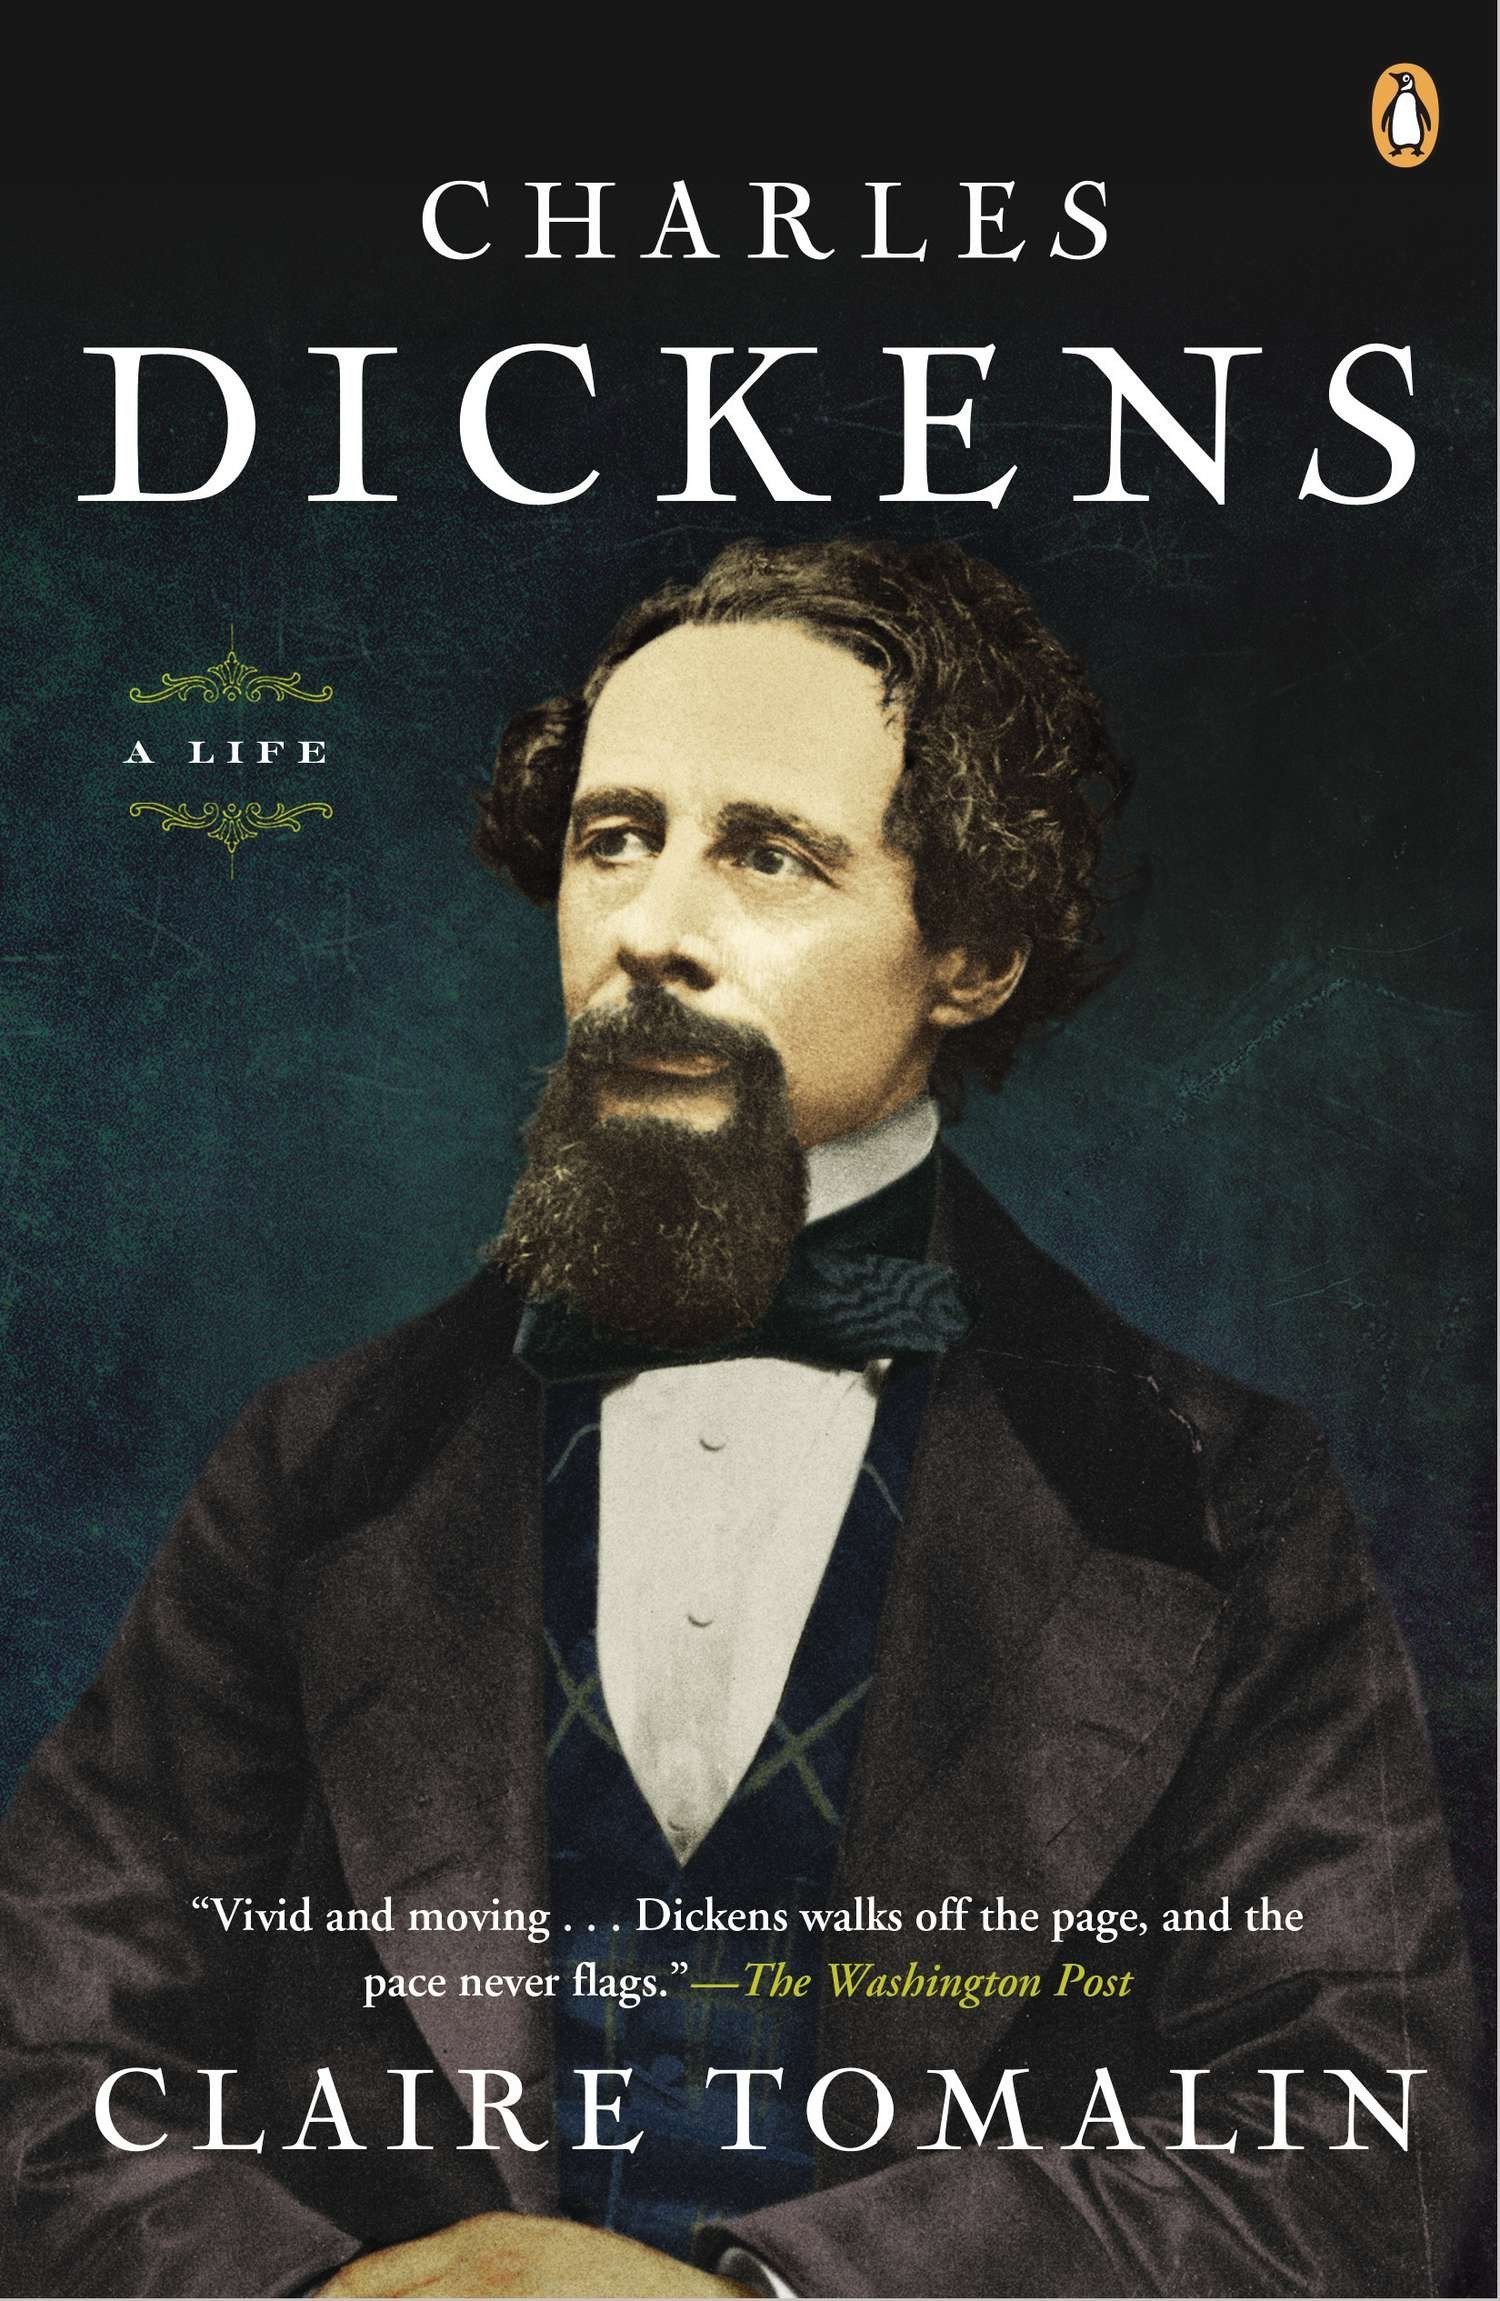 Image result for charles dickens a life by claire tomalin images